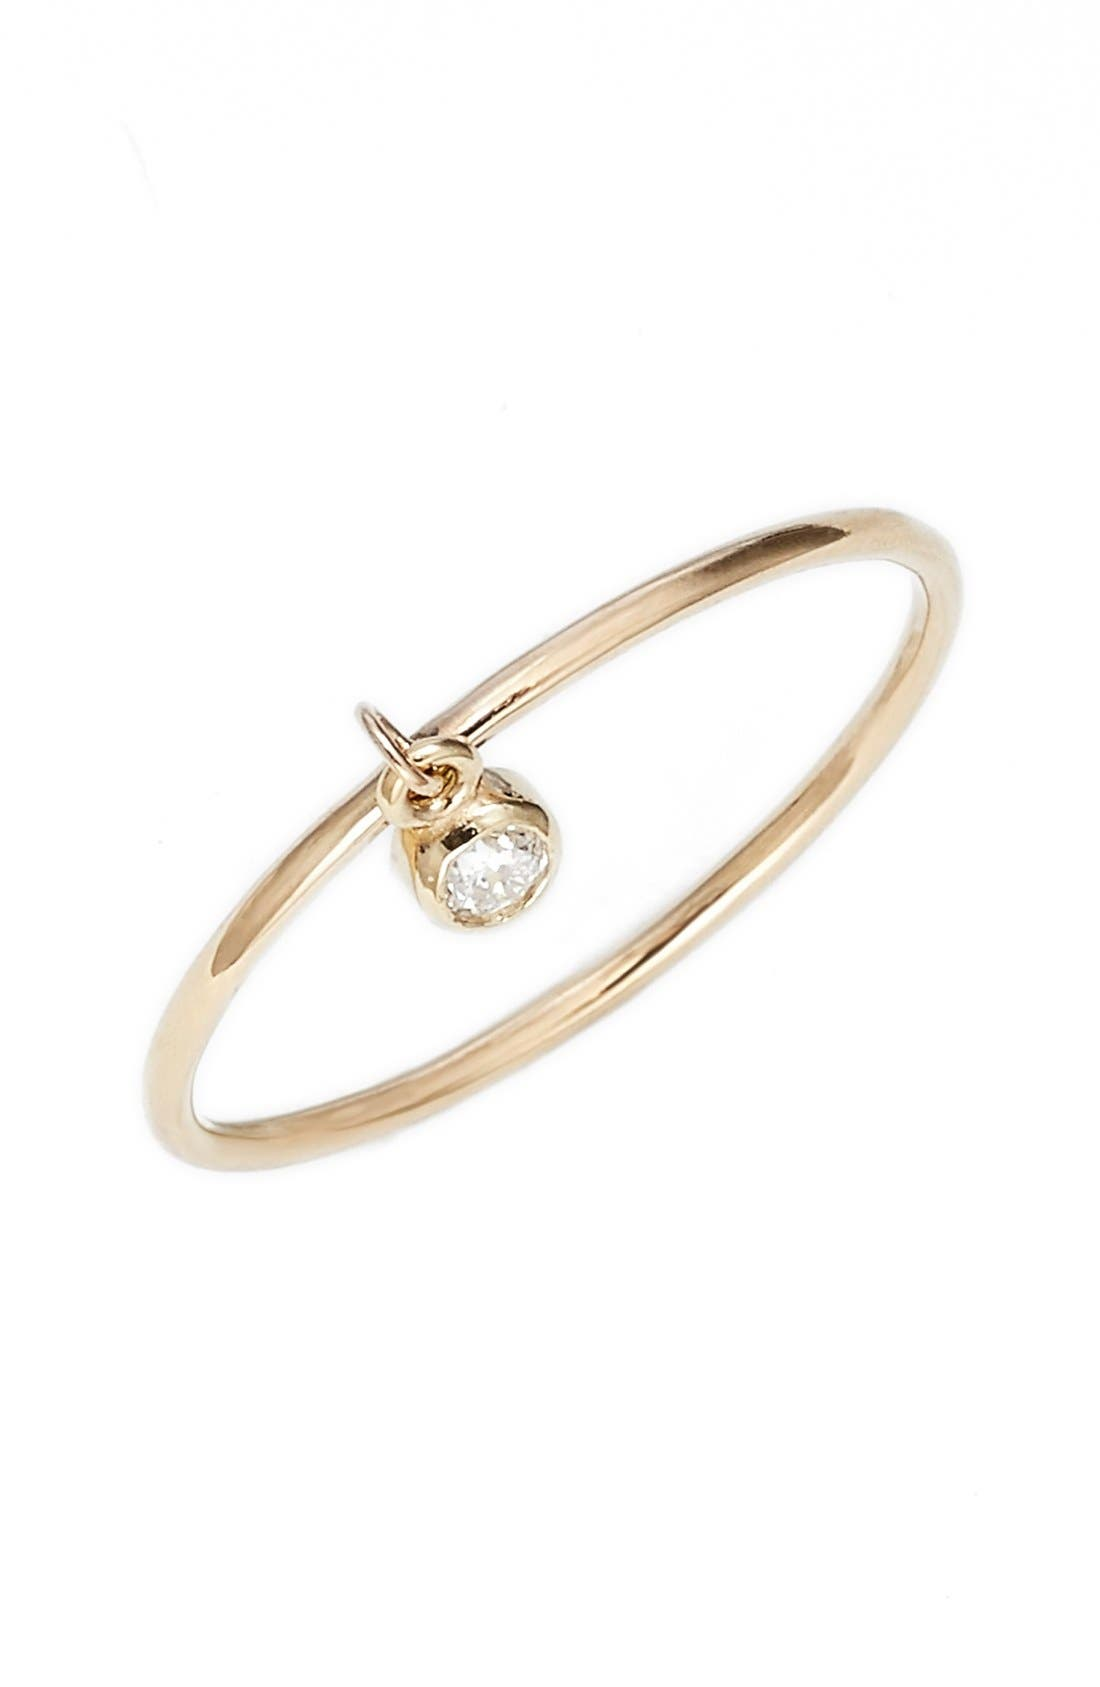 Dangling Diamond Ring,                         Main,                         color, YELLOW GOLD